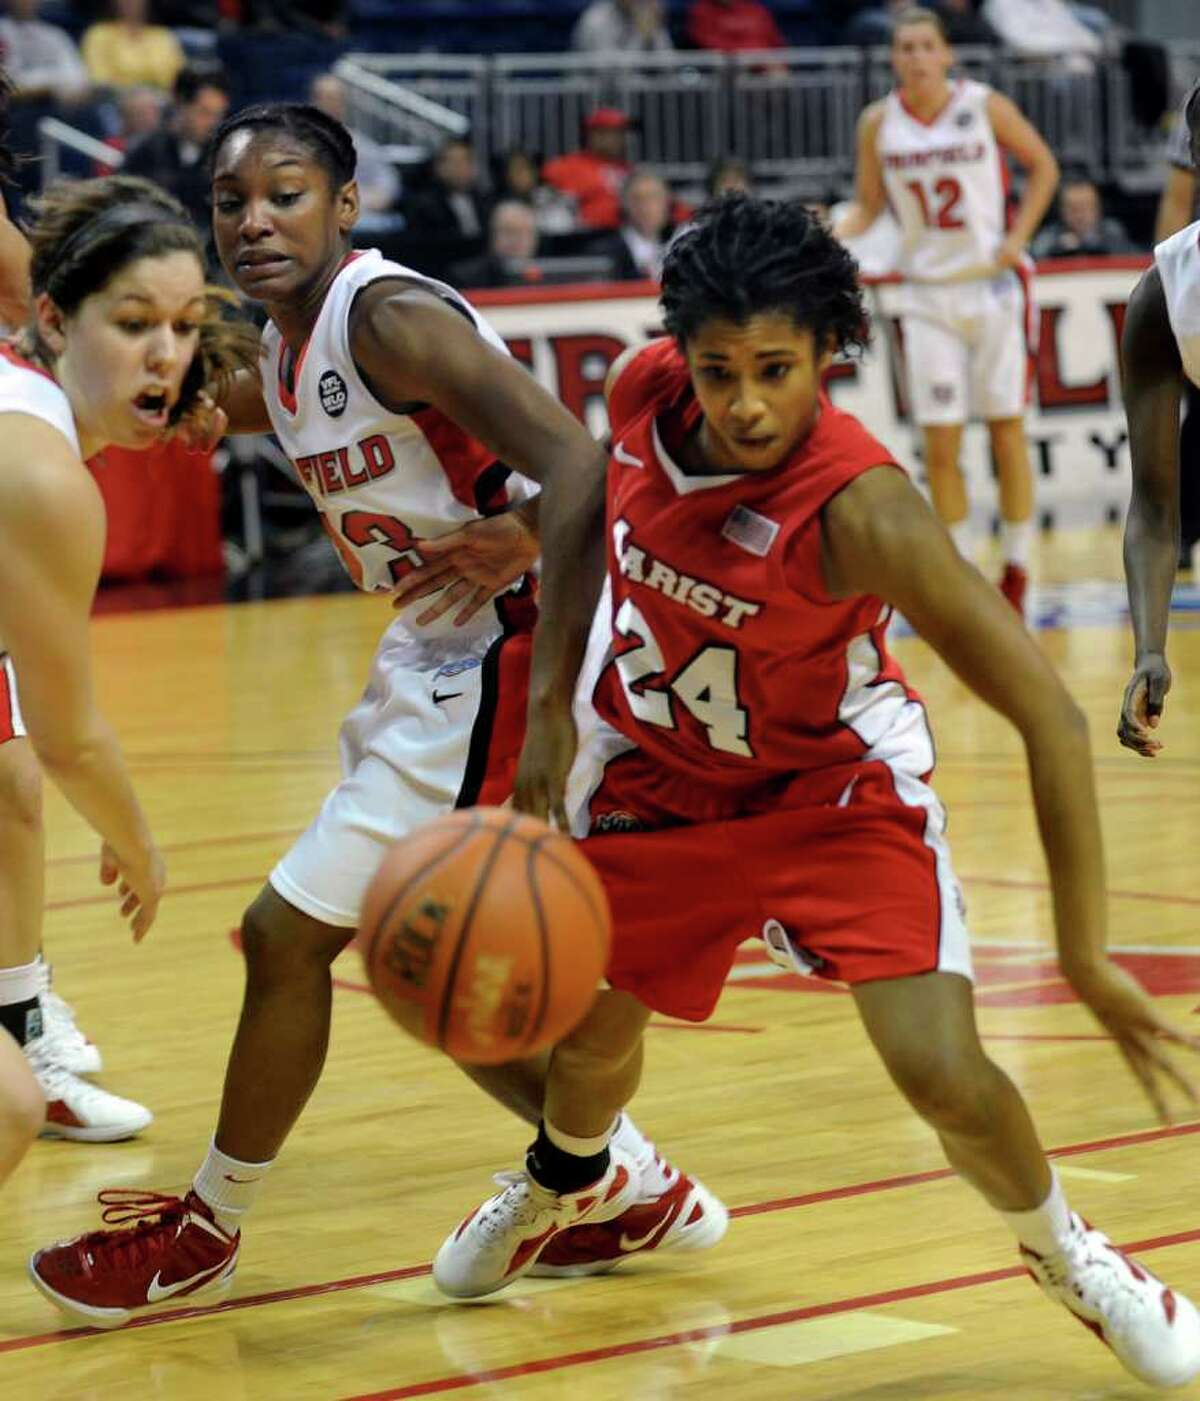 Fairfield University's #23 Taryn Johnson and Marist's #24 Carielle Yarde, right, go for a rebound, during womens basketball action at the Webster bank Arena in Bridgeport, Conn. on Thursday January 12, 2012.